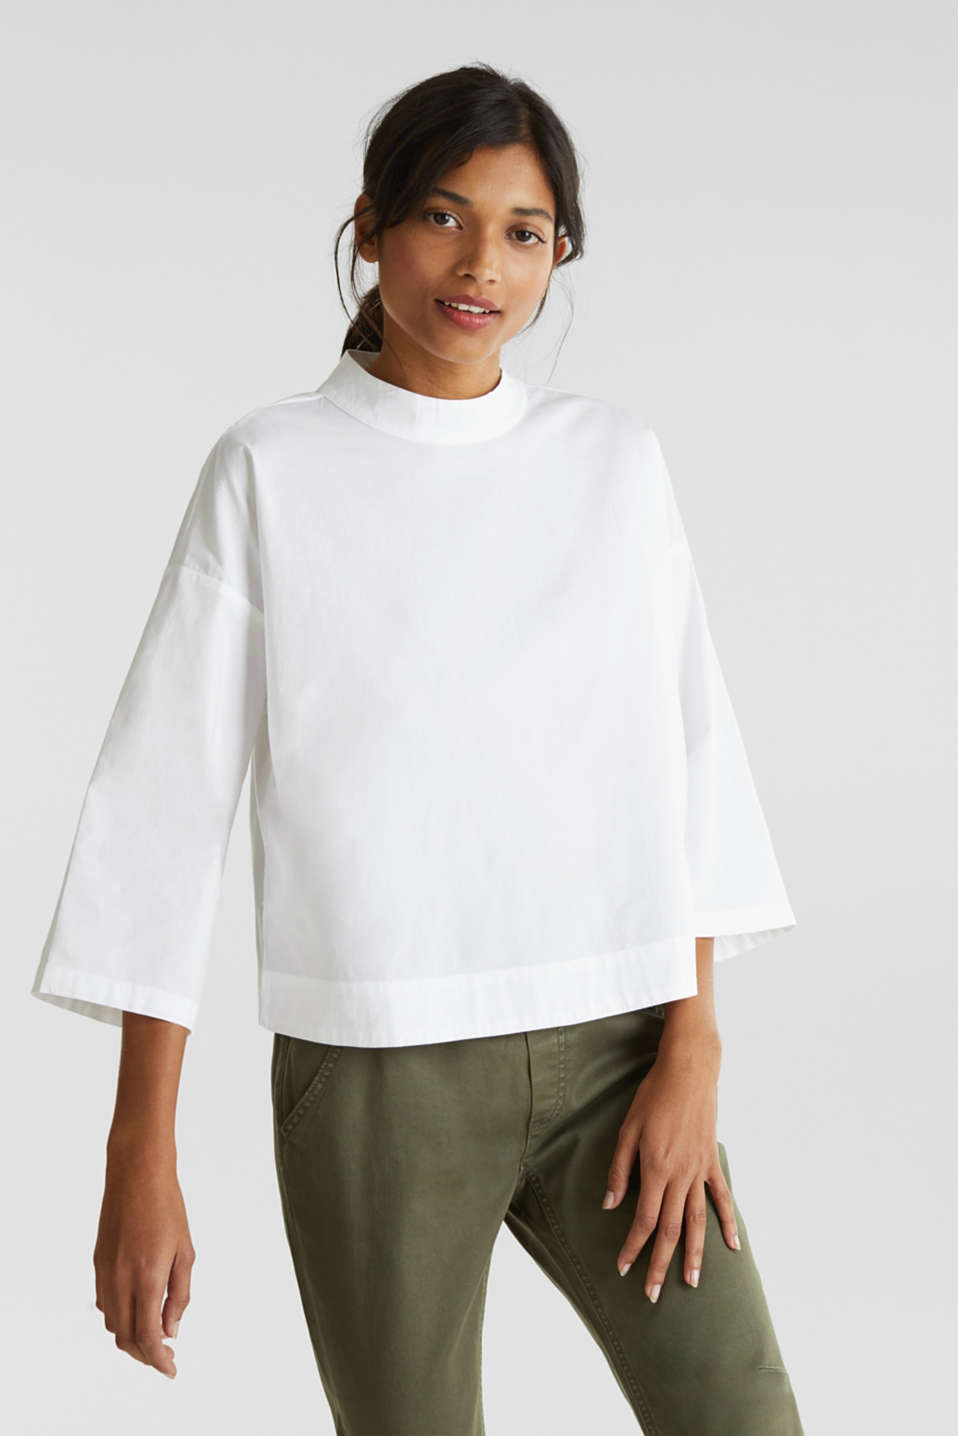 edc - Boxy blouse with a stand-up collar, stretch cotton